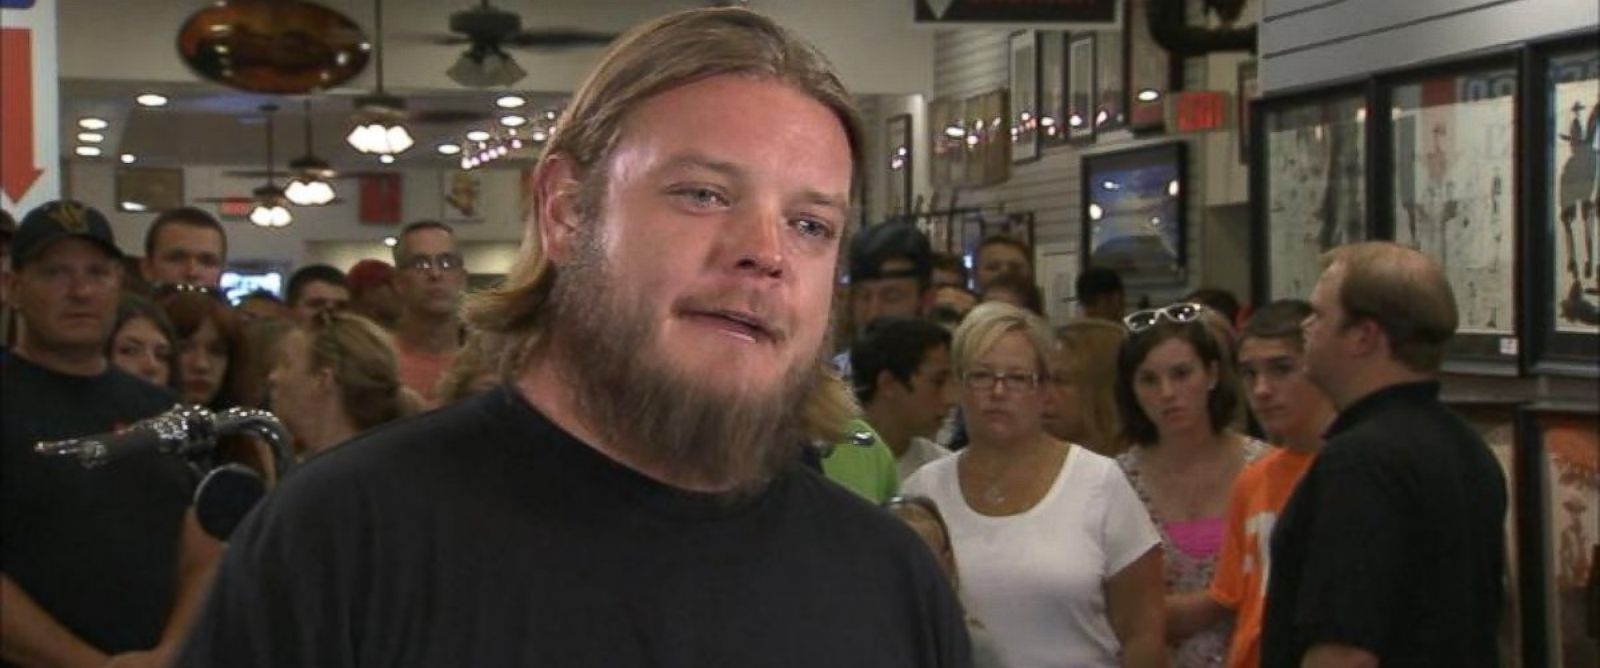 PHOTO: Corey Harrison on Good Morning America, July 21, 2014.